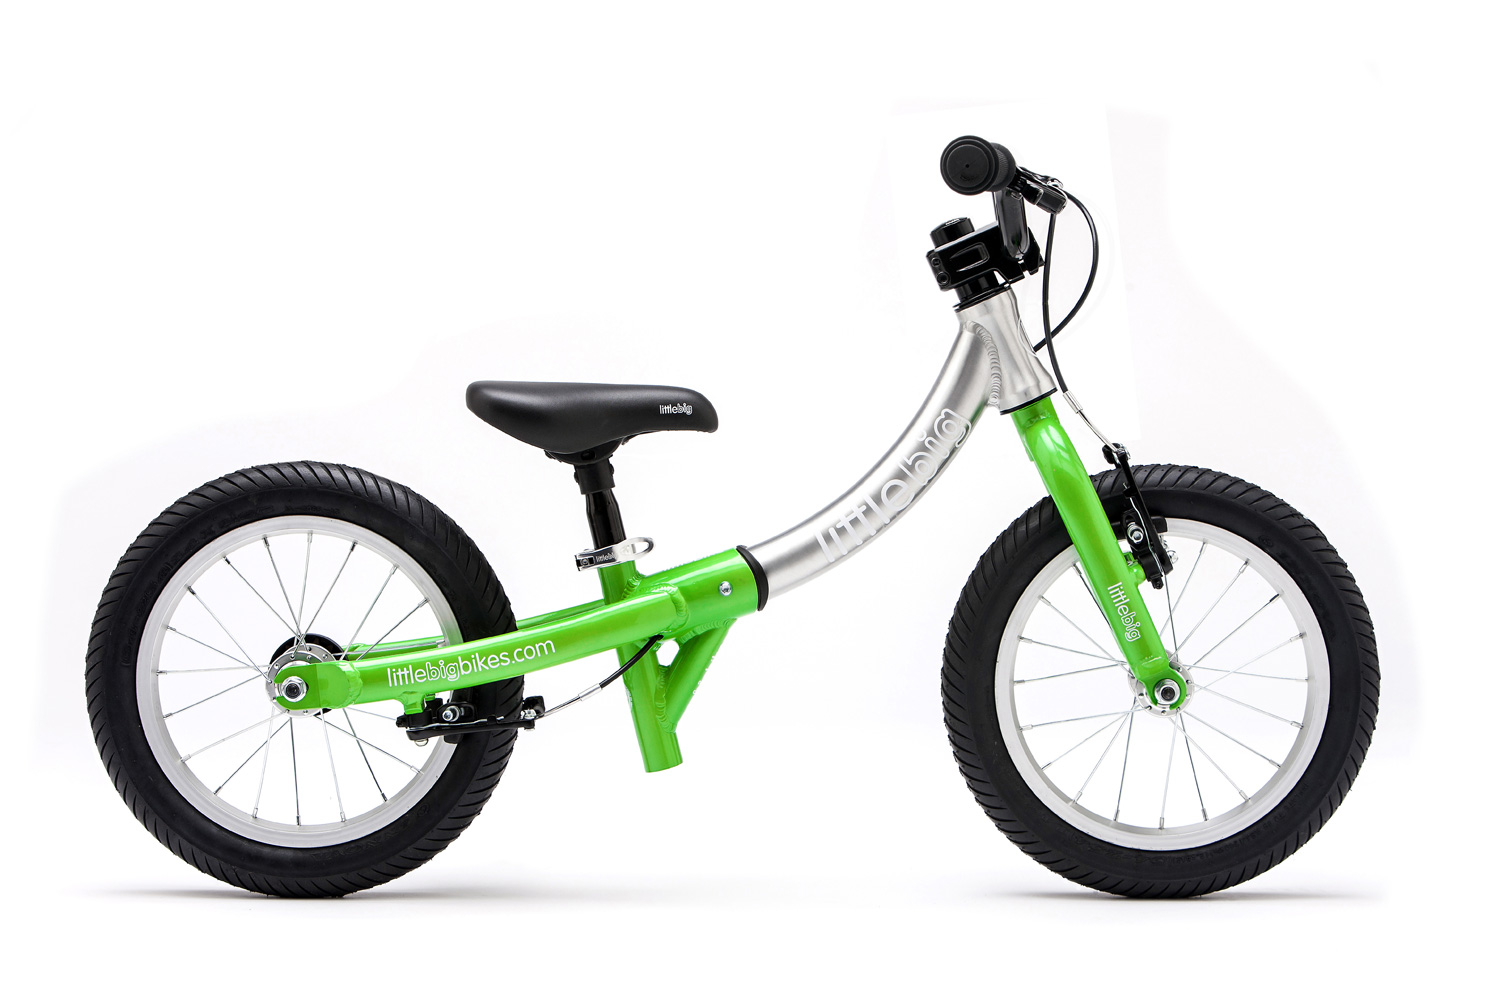 LittleBig-little-balance-bike-green-side